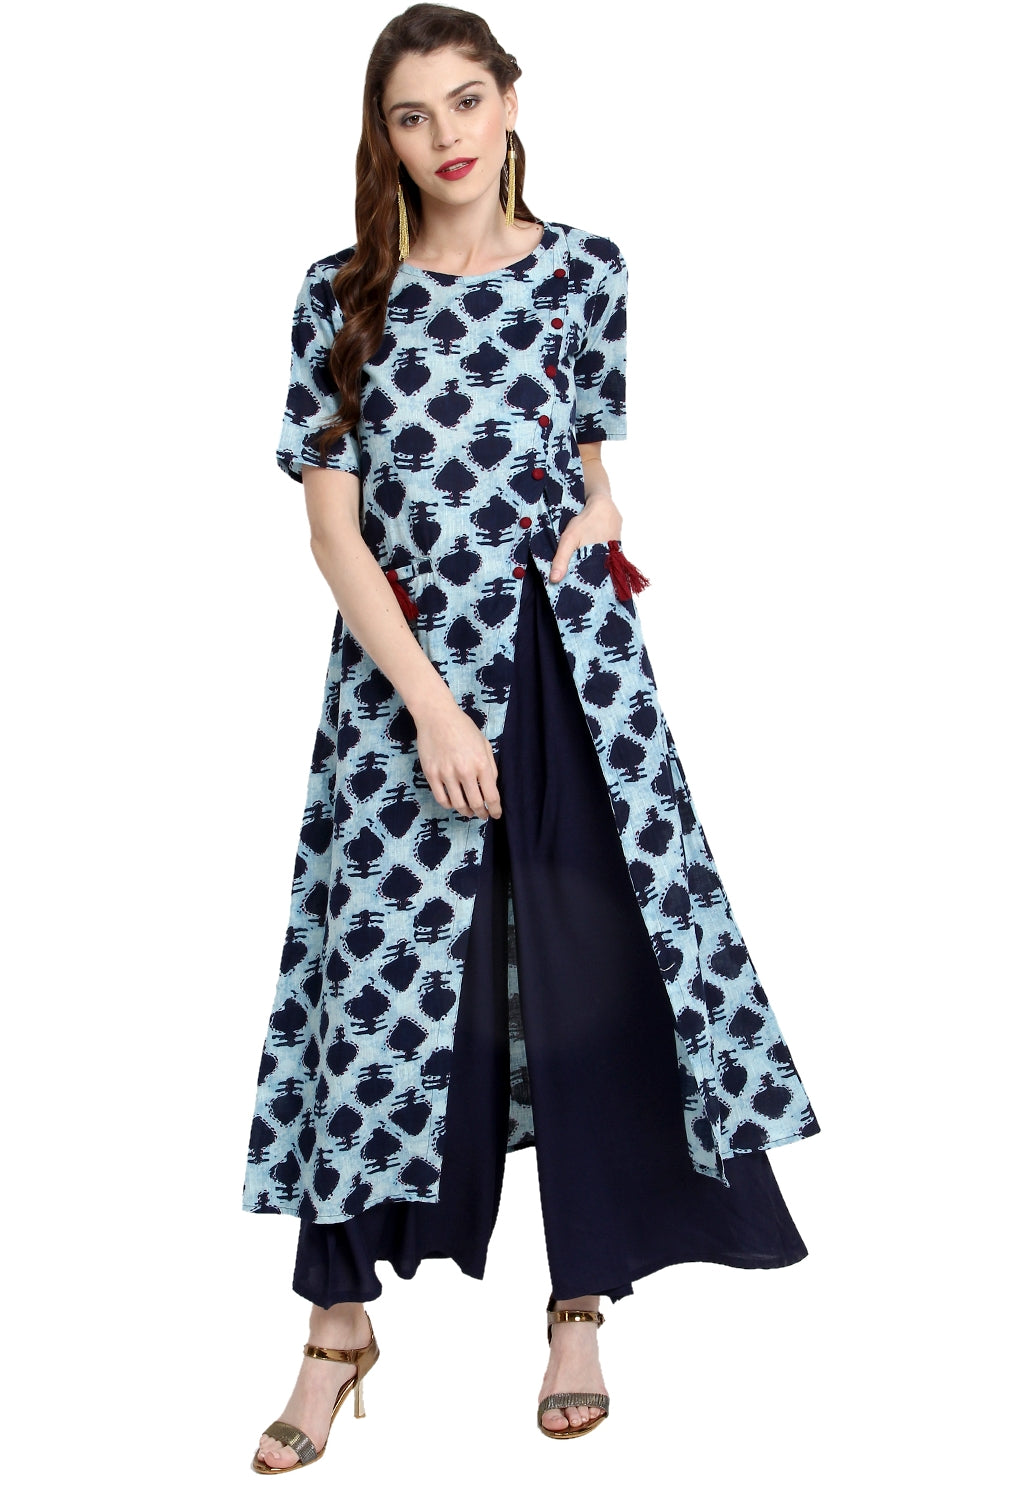 Blue Color Cotton Readymade Party Wear Kurtis ( Sizes-36,38,40,42,44) Janasya Catlog SJ-10264